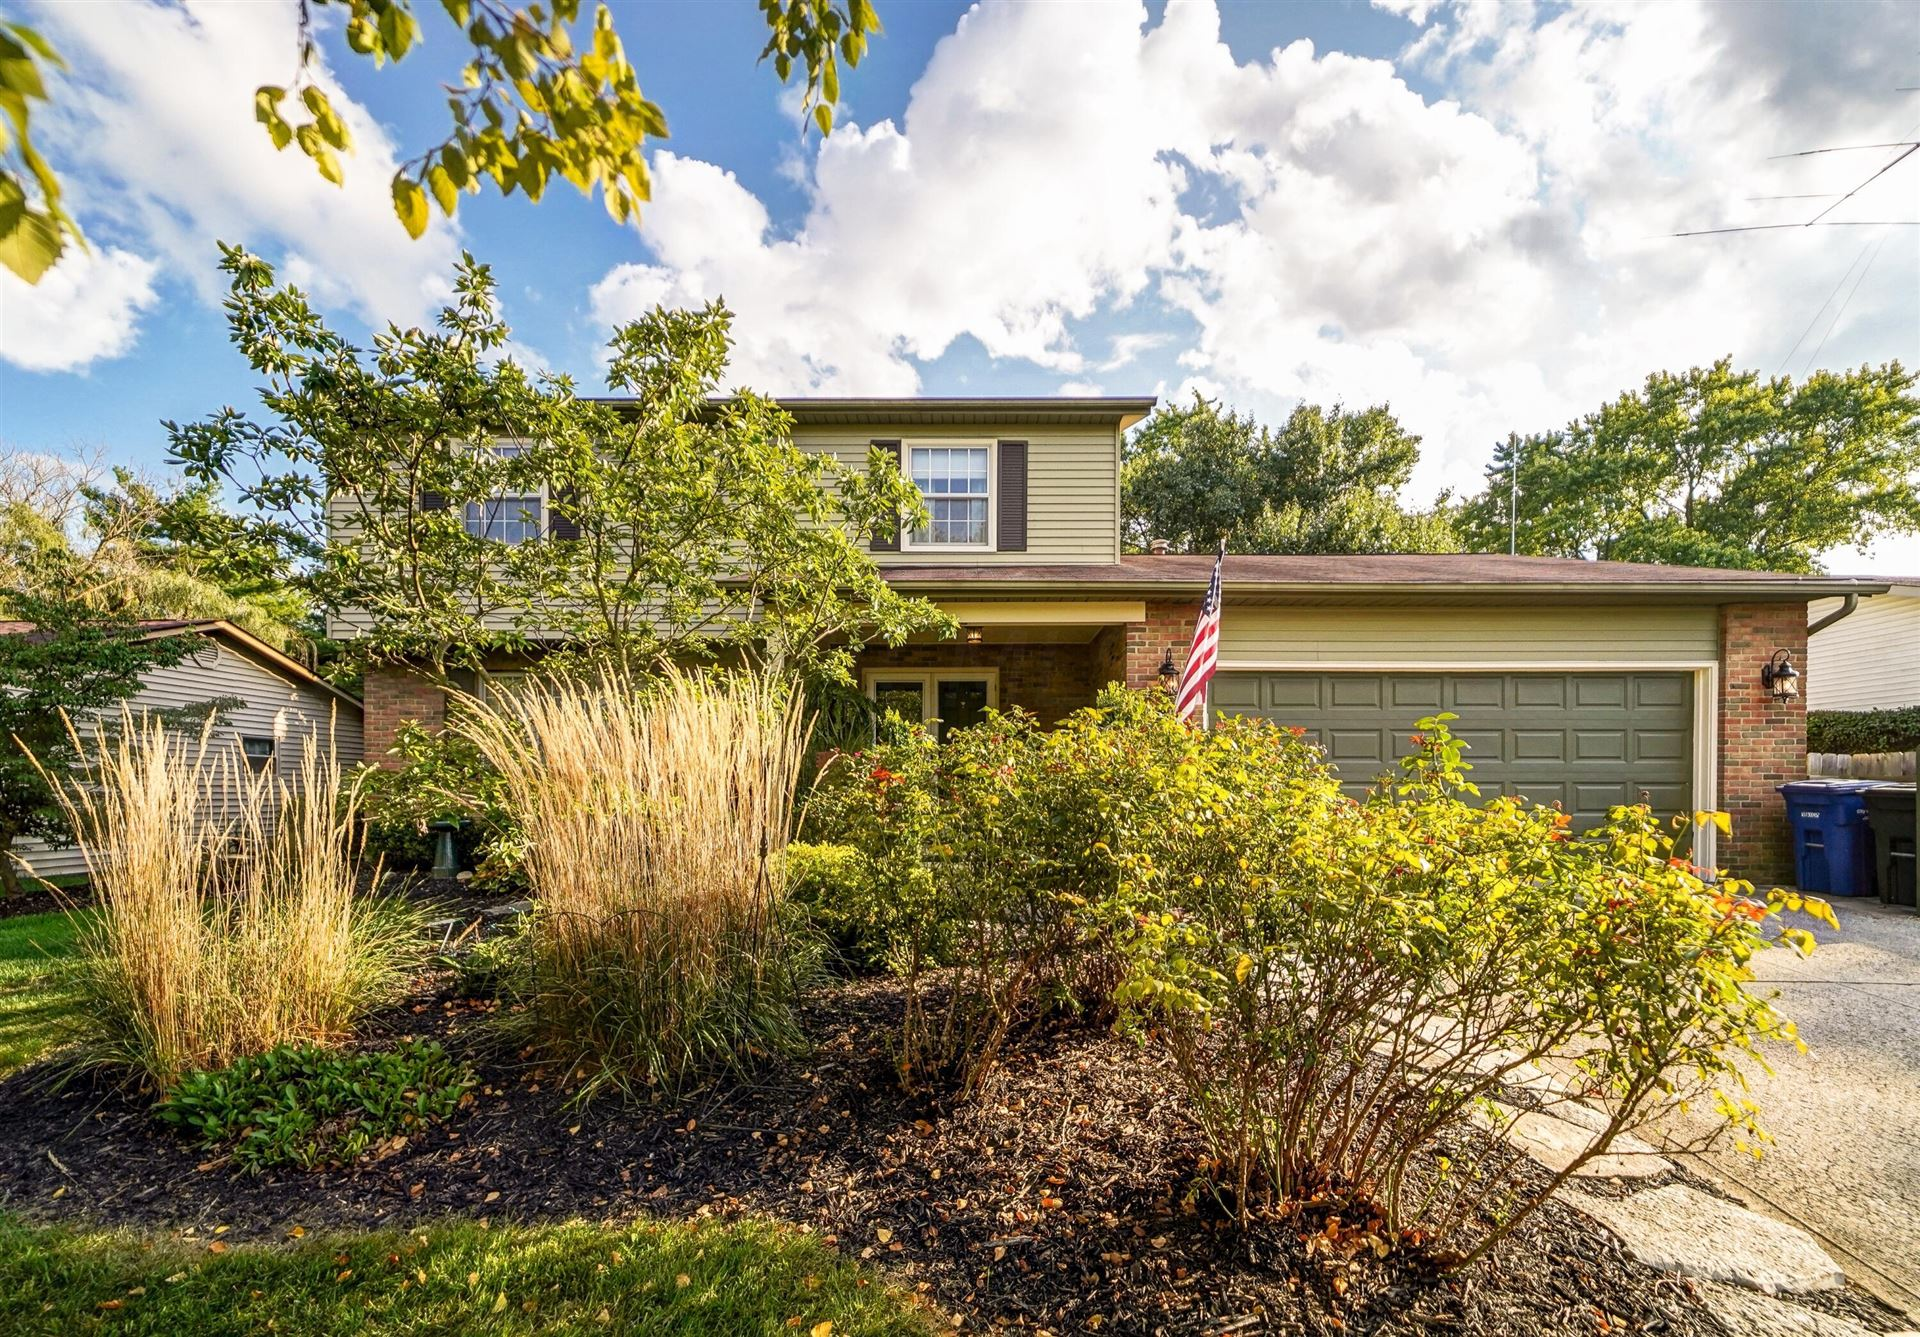 Photo of 747 W Main Street, Westerville, OH 43081 (MLS # 221036390)